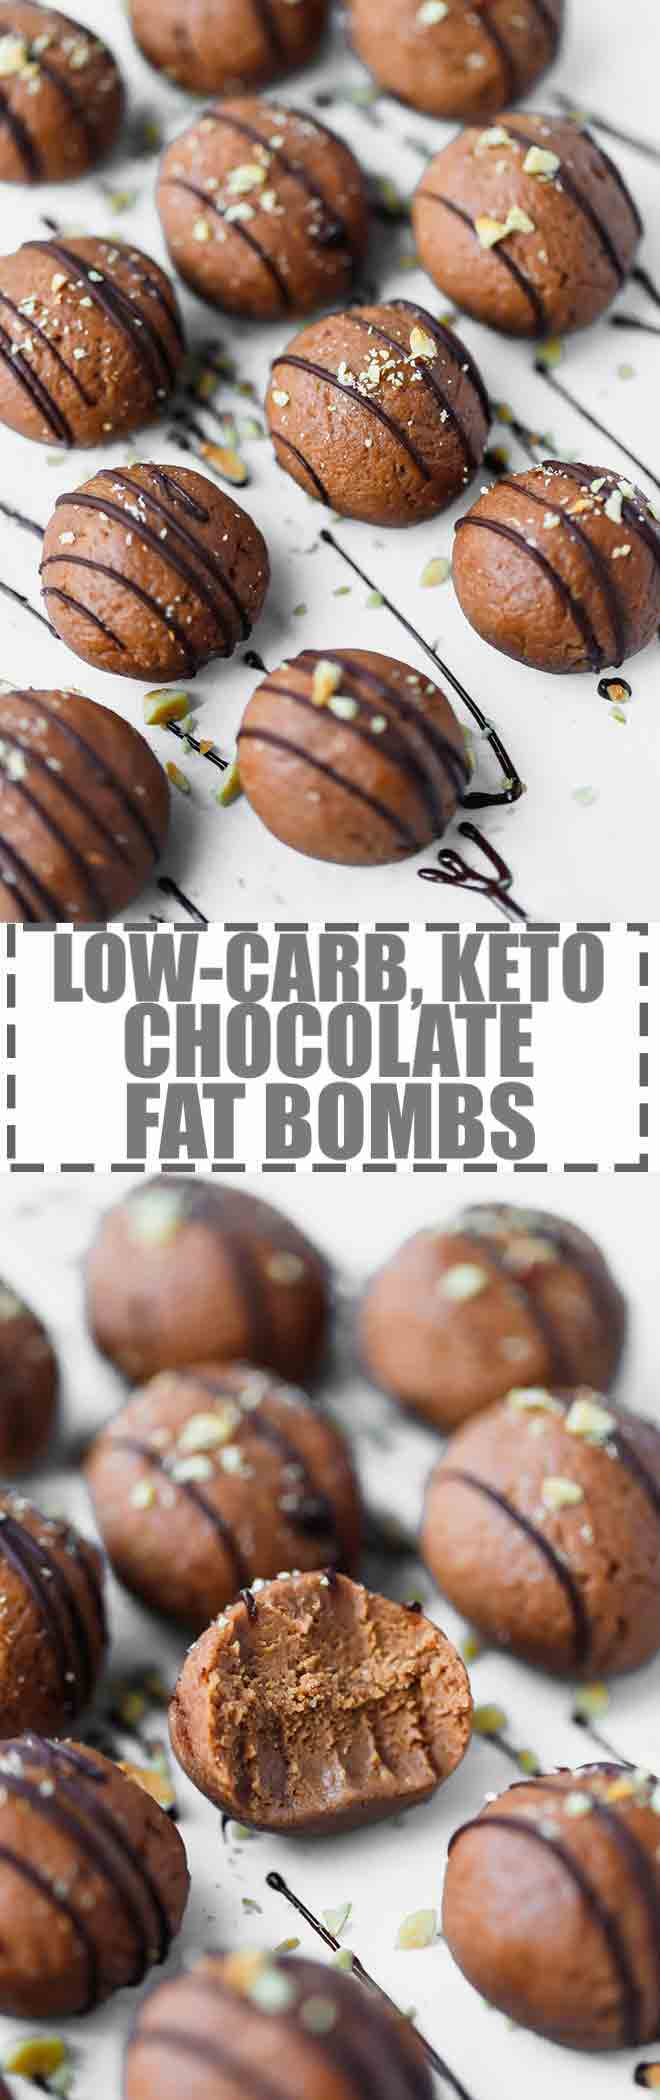 Low-Carb, Keto Chocolate Fat Bombs Recipe - fudgy chocolate balls, made with cream cheese, butter, dark chocolate, sweetener, nut butter and coconut flour. Easy to make, great for a snack or dessert. Keep your sugar cravings satisfied with this delicious keto sweet treat. #keto #lowcarb #fatbombs #chocolatefatbombs